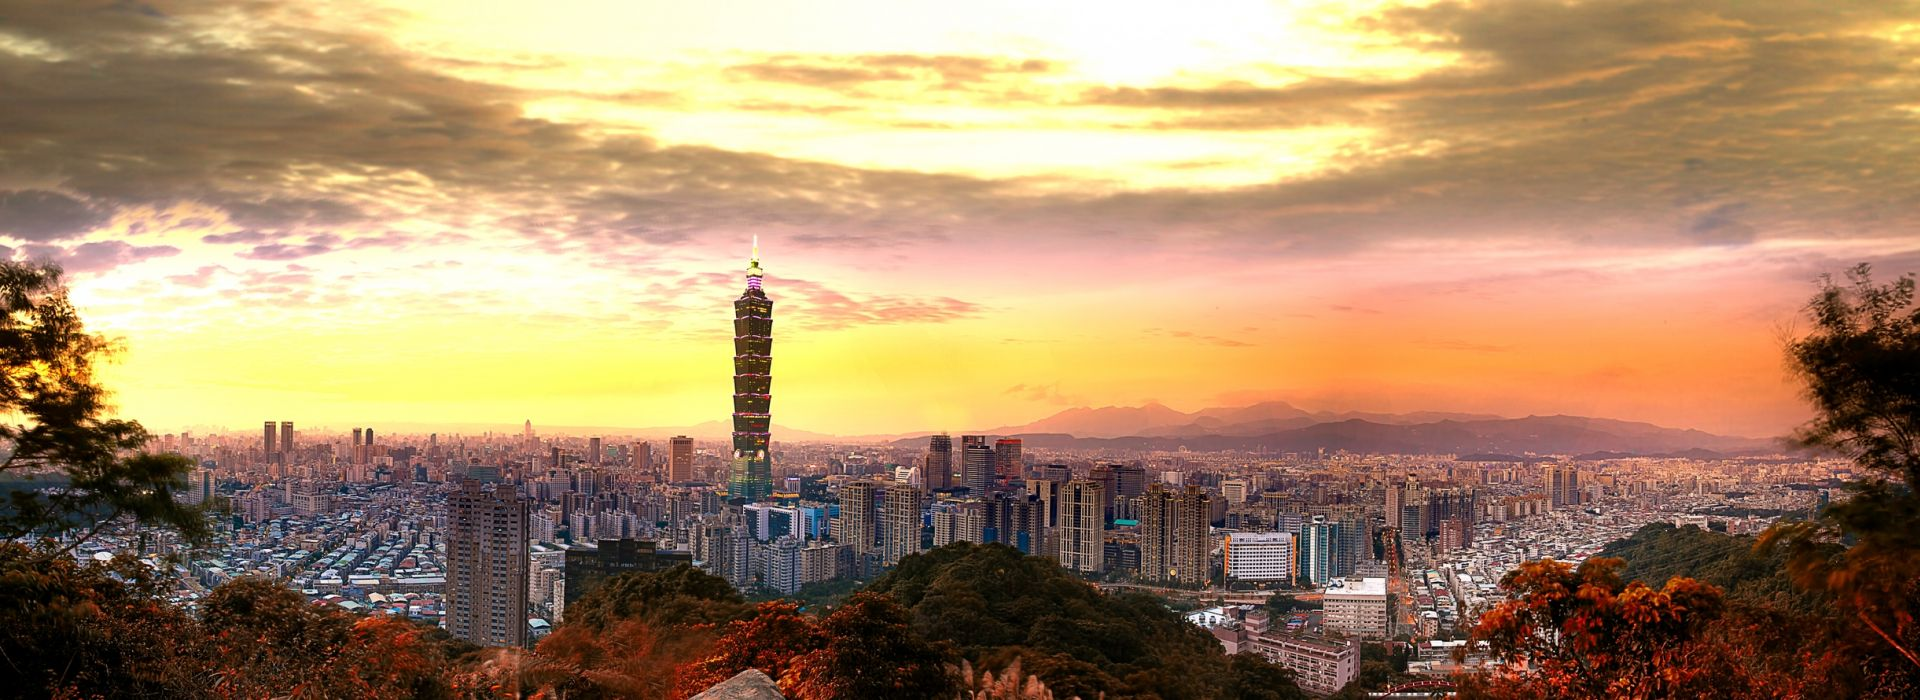 Travelling Taiwan - Tours and Holiday Packages in Taiwan